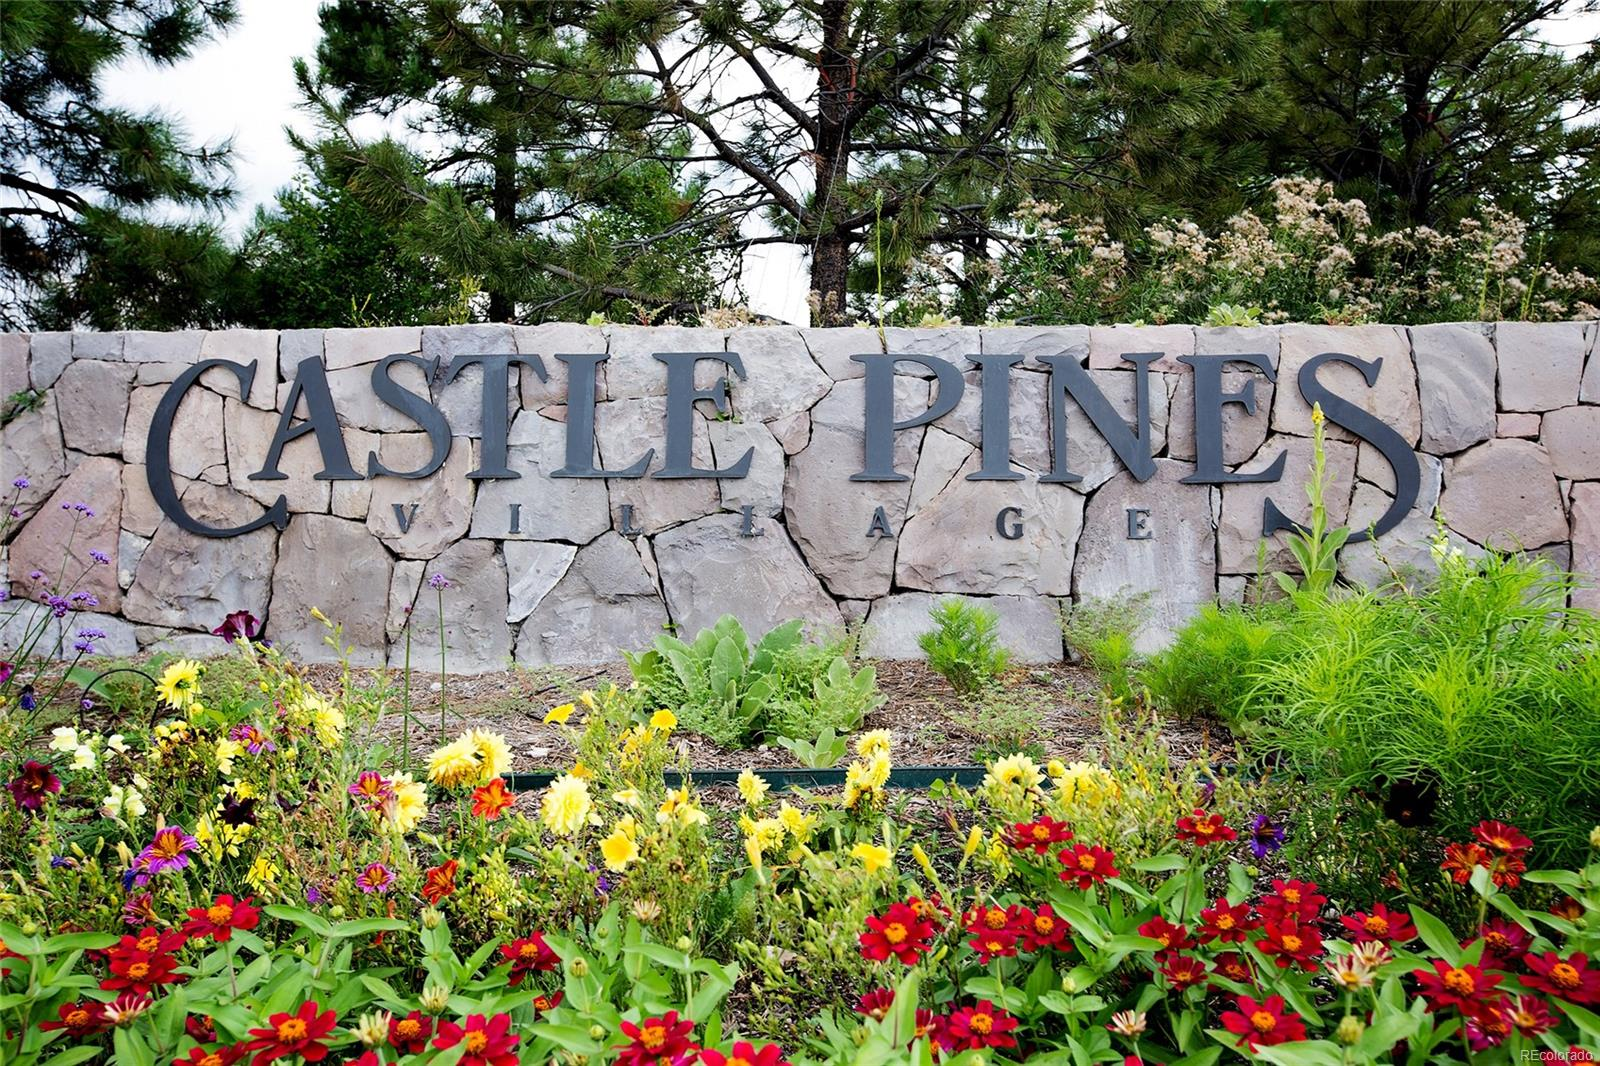 782 International Isle Drive, Castle Rock, CO 80108 - Castle Rock, CO real estate listing